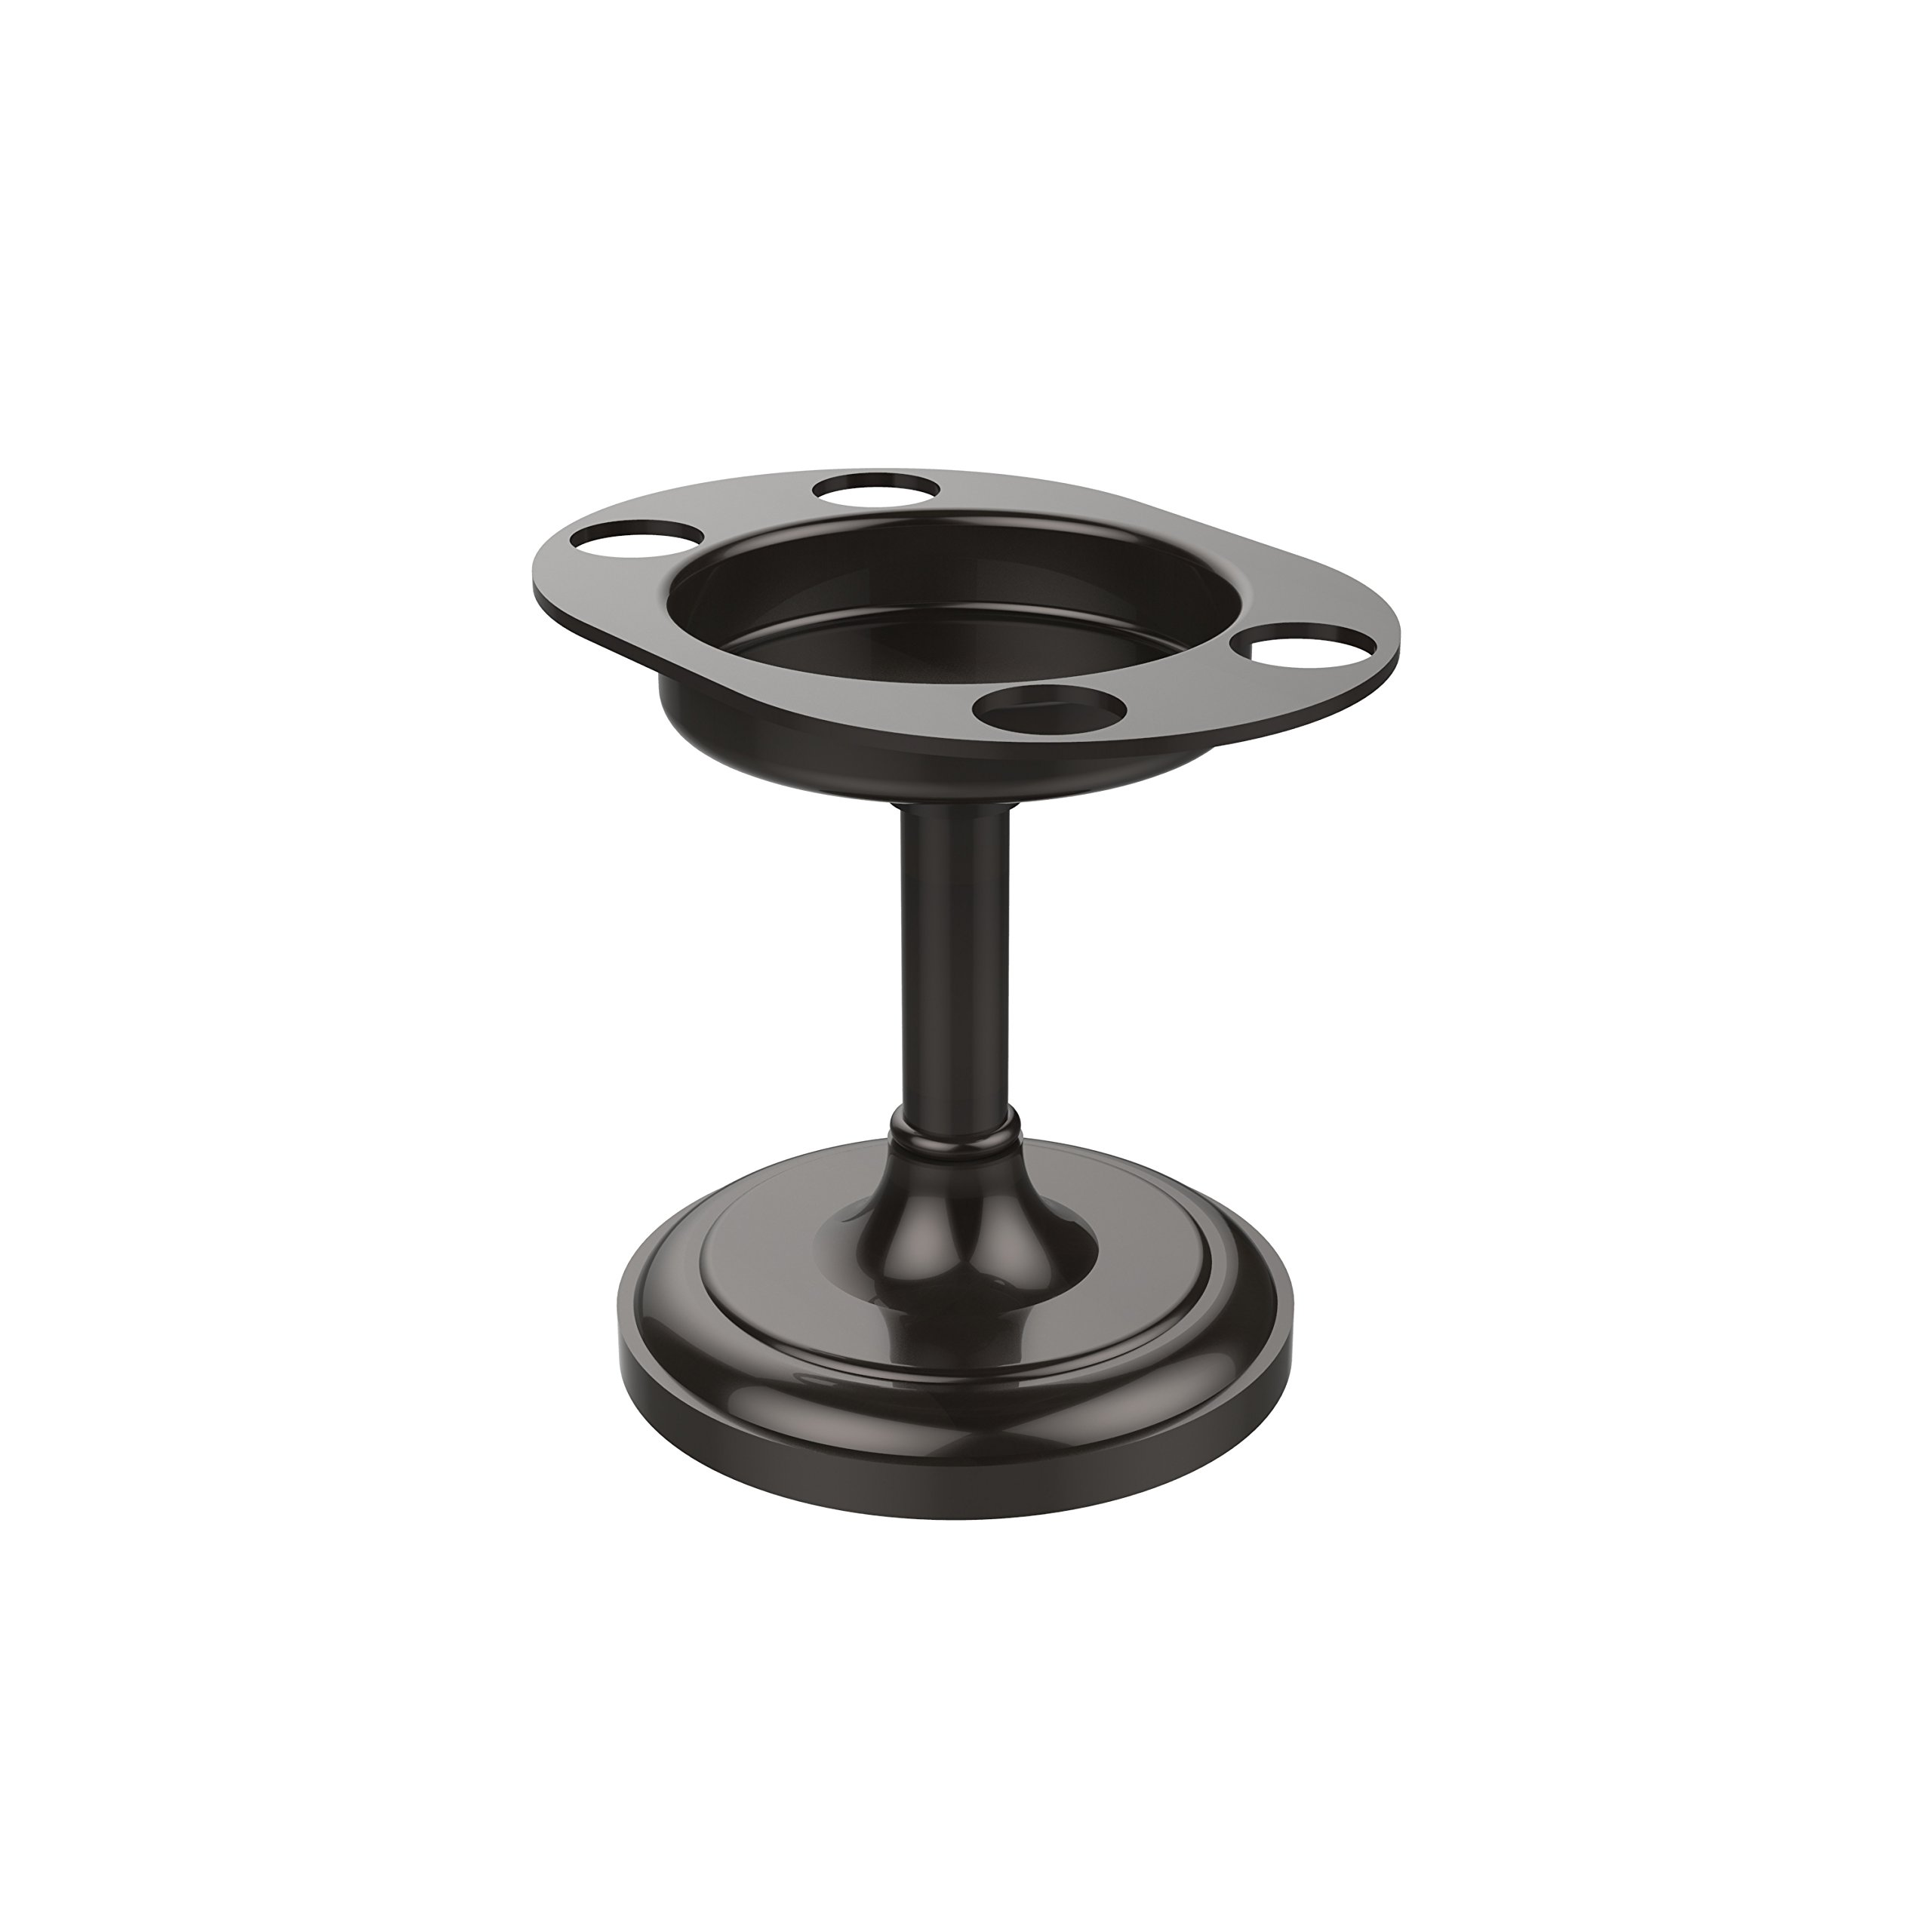 Allied Brass S-55-ORB Vanity Top Tumbler and Toothbrush Holder, Oil Rubbed Bronze